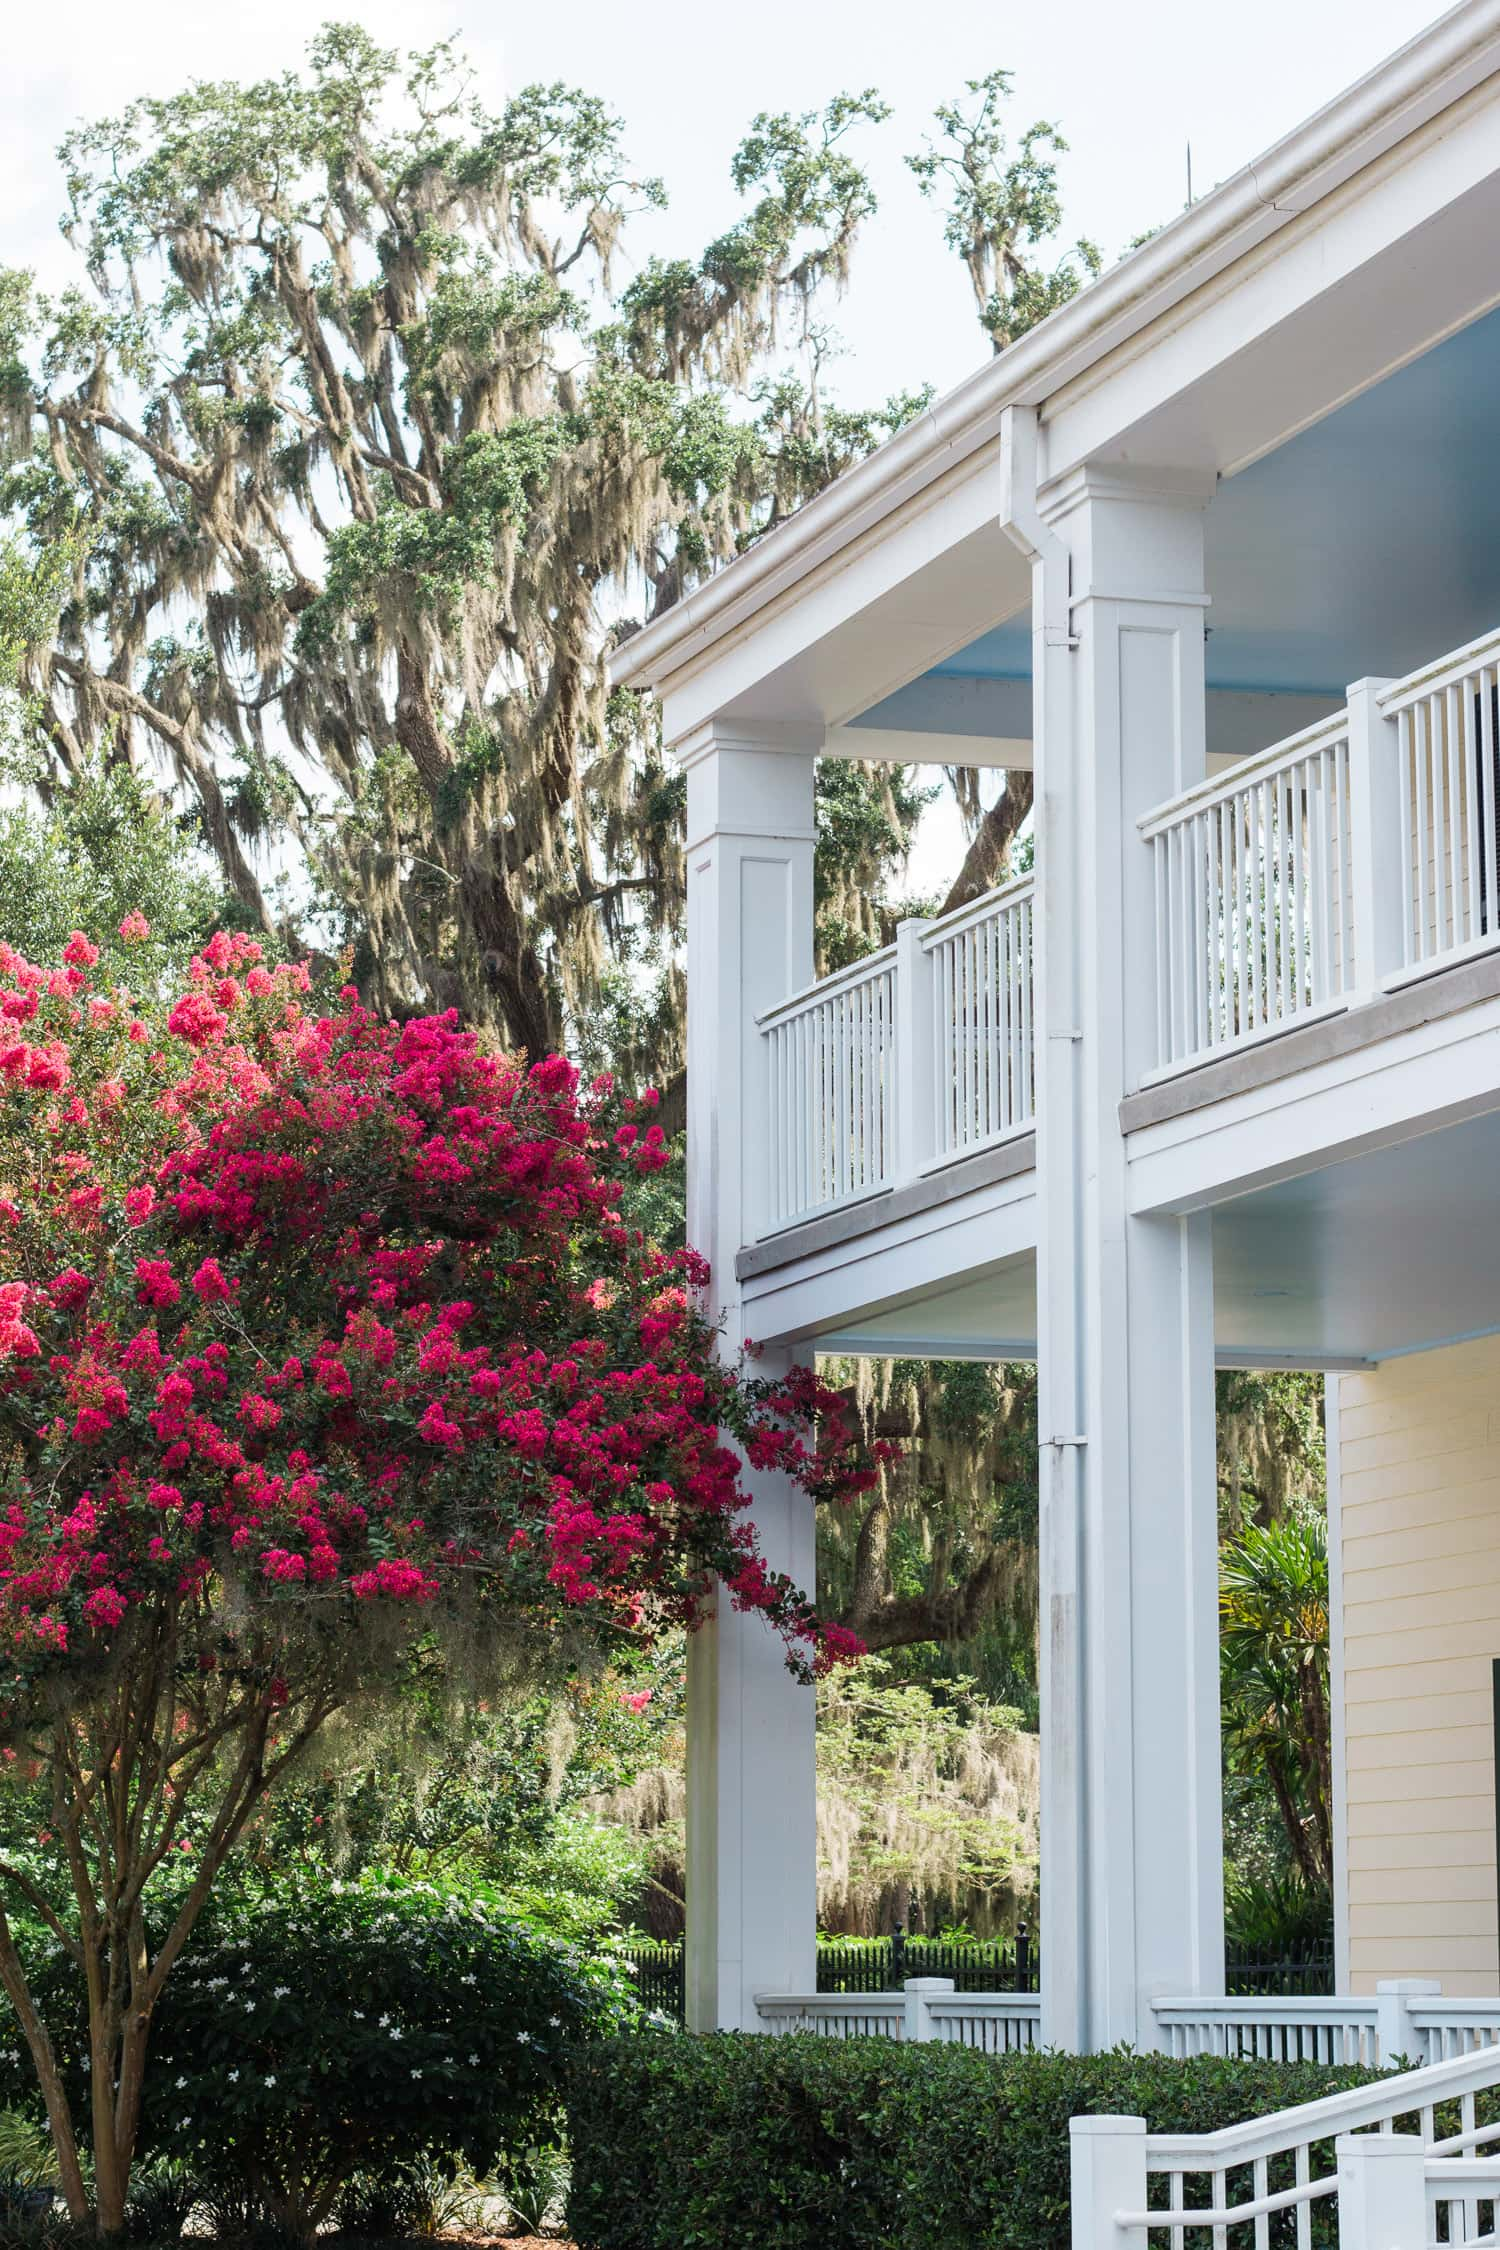 Leu Gardens is one of my favorite places in Orlando! Planning a trip to Orlando? I've rounded up the top 10 things to do in Orlando, Florida, that are guaranteed to make your trip a success. Whether you're moving to Orlando or just headed in on vacation, you will LOVE this list of fun activities in Orlando by Florida travel blogger Ashley Brooke Nicholas #CORTatHome sponsored by CORT Furniture | affordable travel tips, orlando vacation tips, vacation tips, florida travel